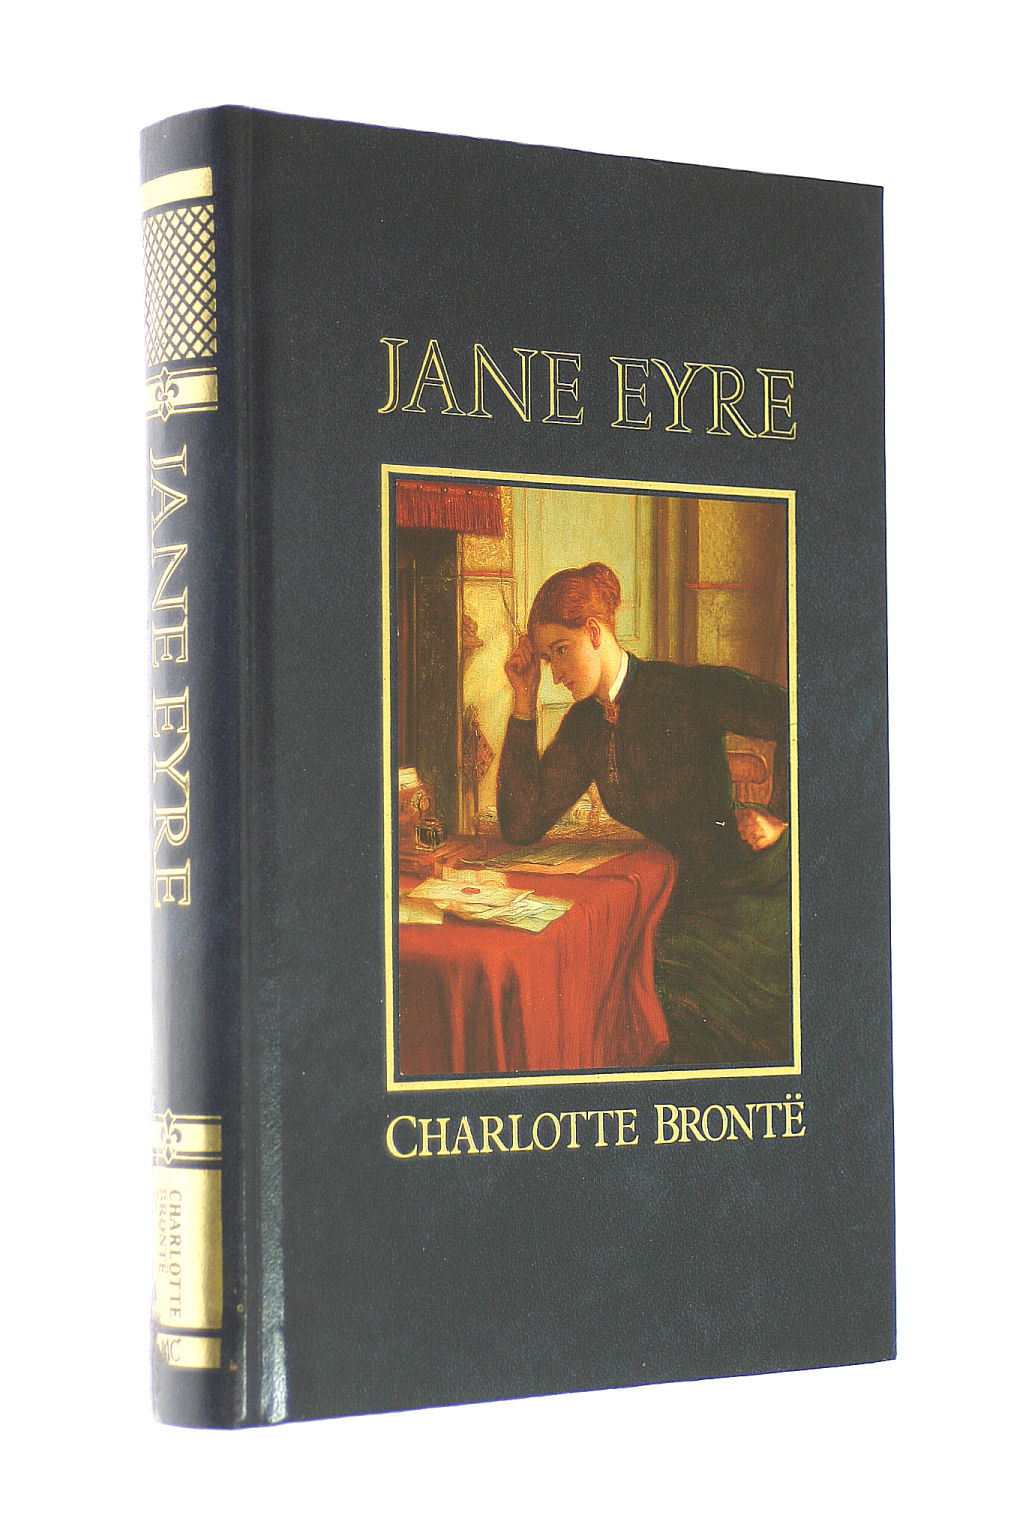 Image for Jane Eyre (The Great Writers Series - Their Lives, Works And Inspiration)